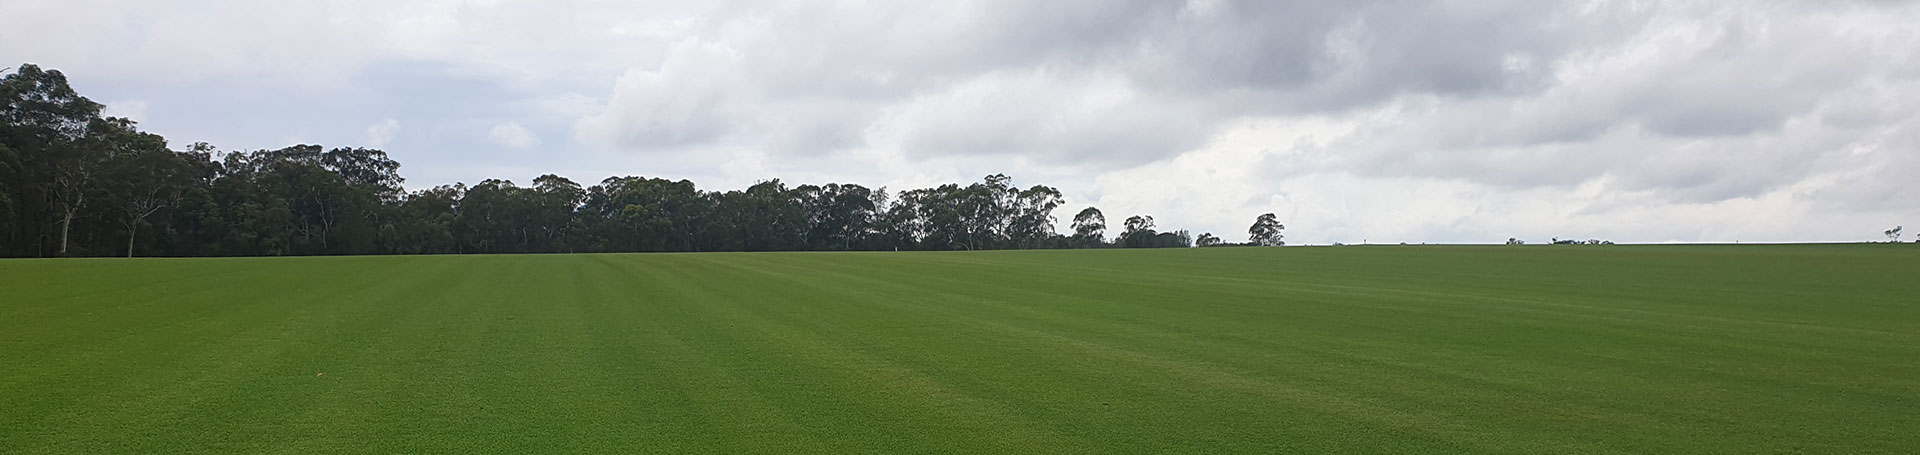 Daleys Turf - Fresh Turf - Sunshine Coast